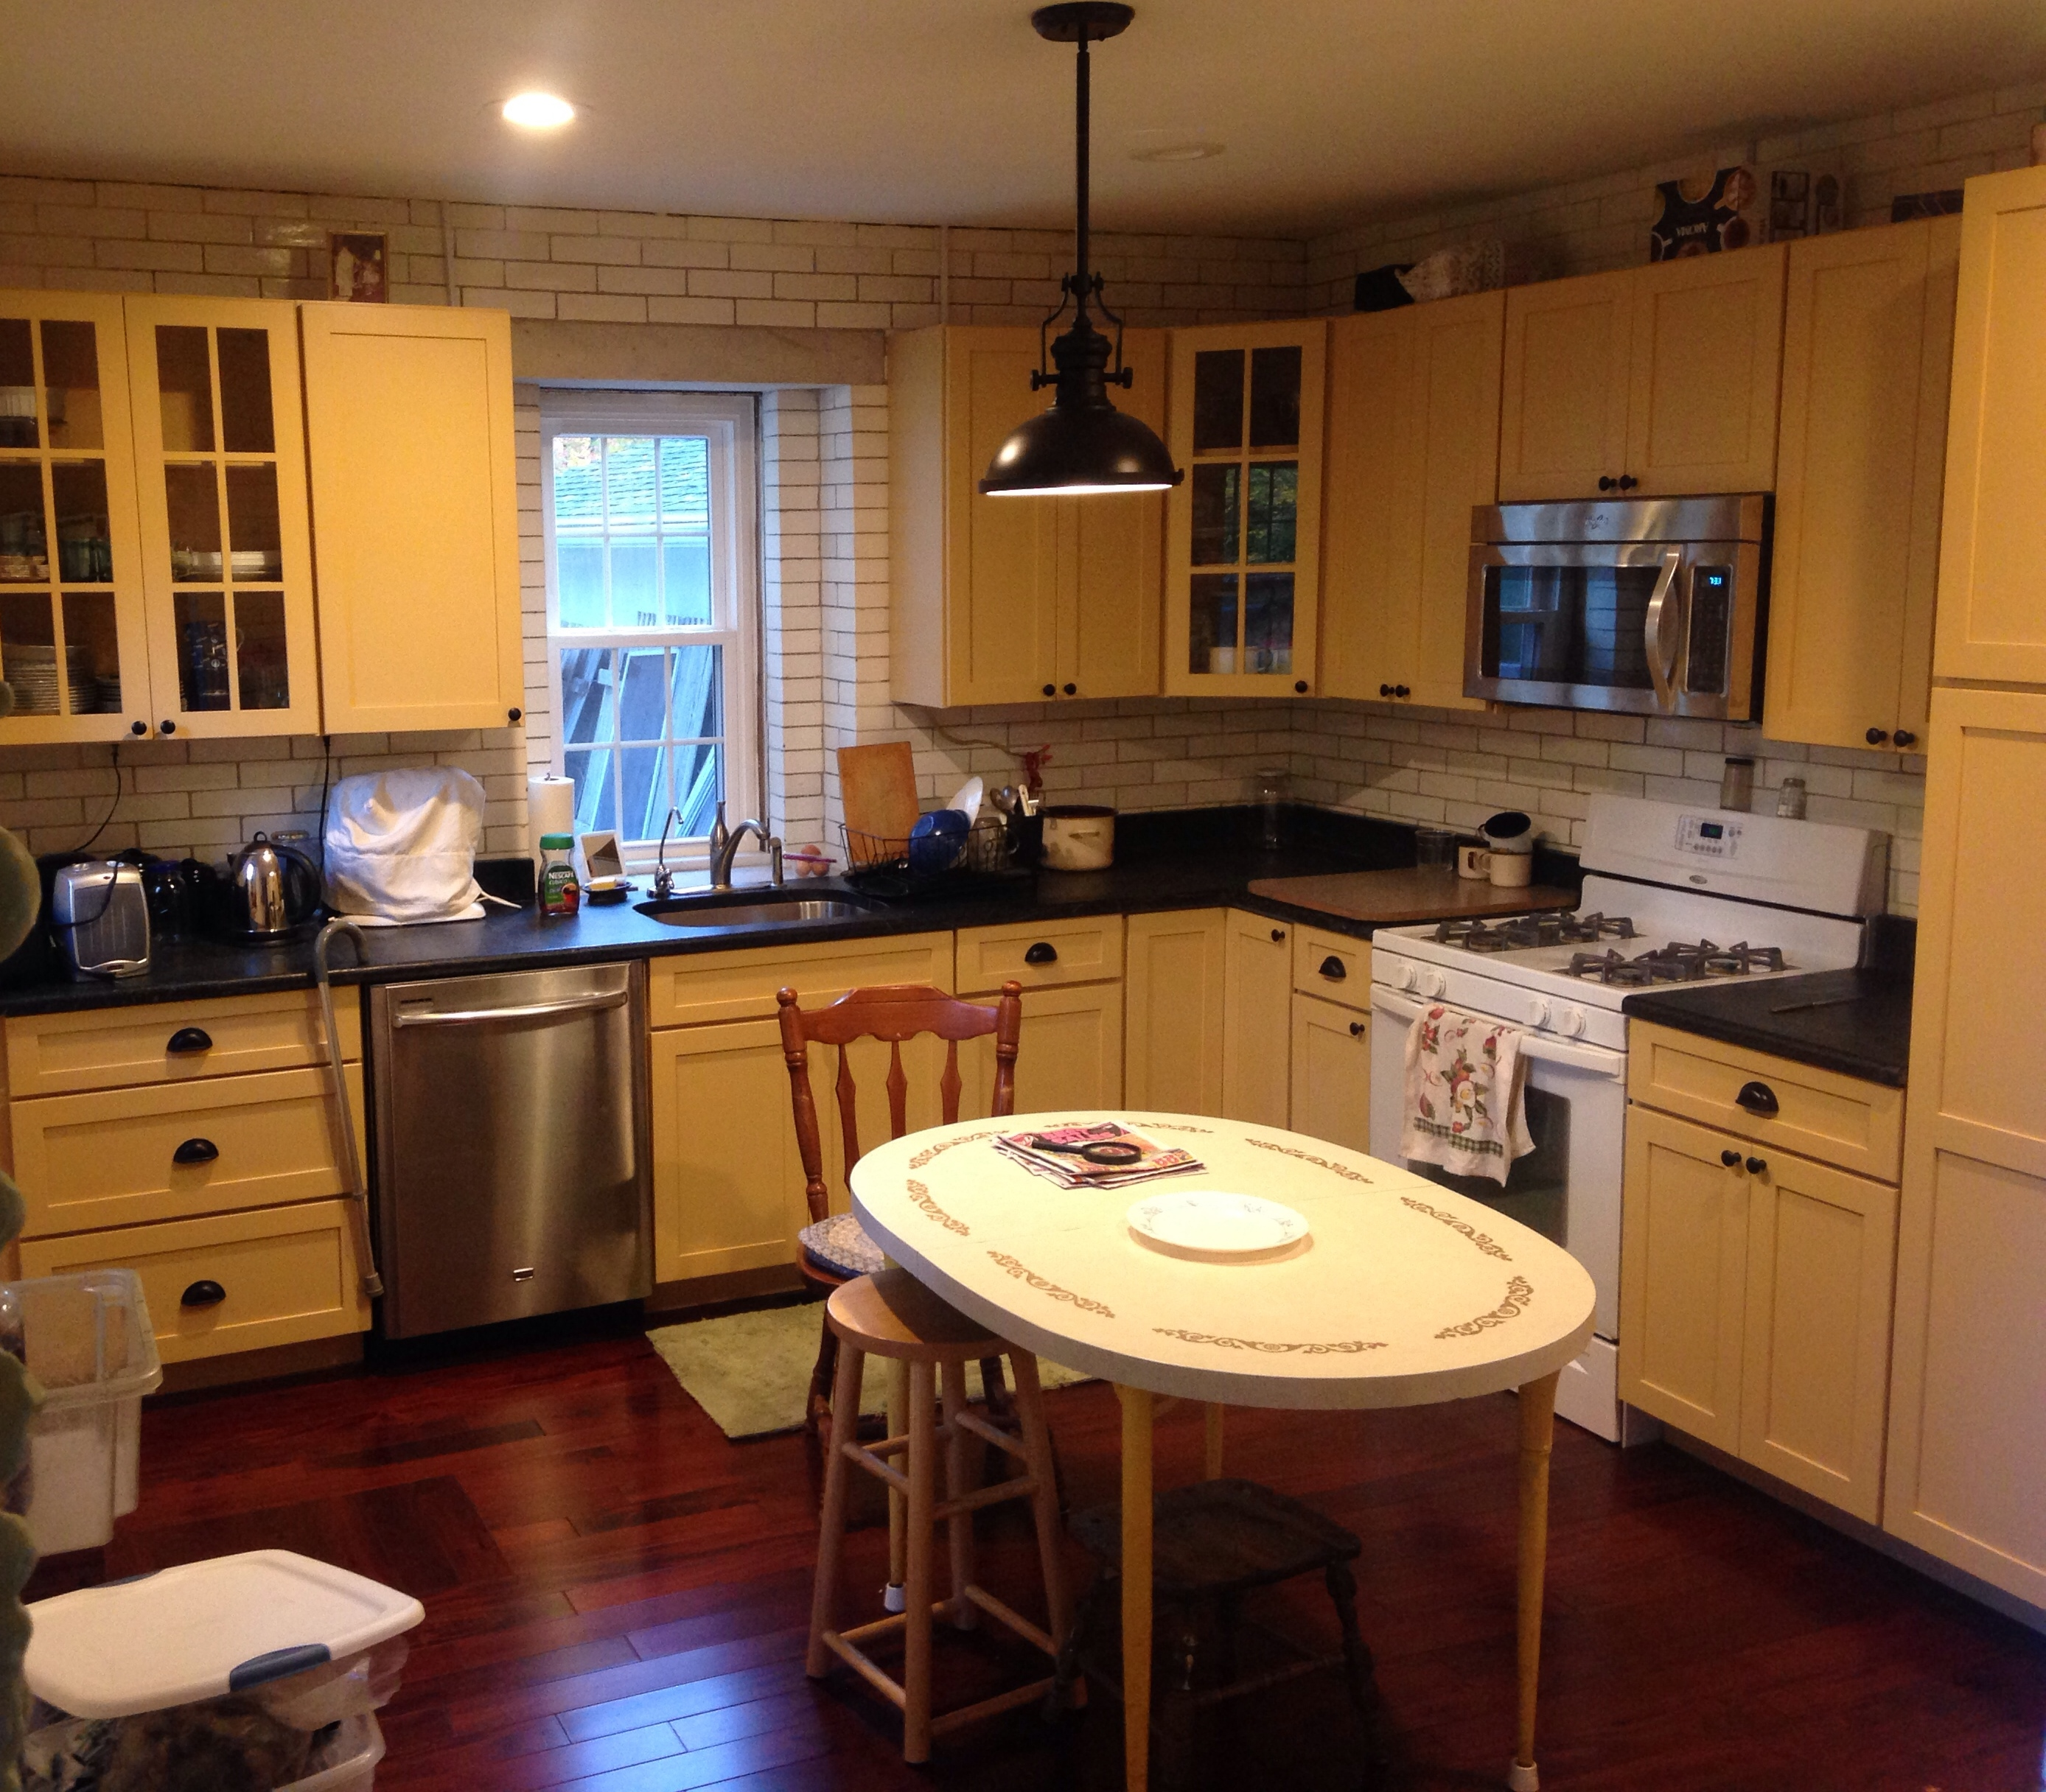 For A New Kitchen Babcis New Kitchen And Kitchen Design Tips First Gen American